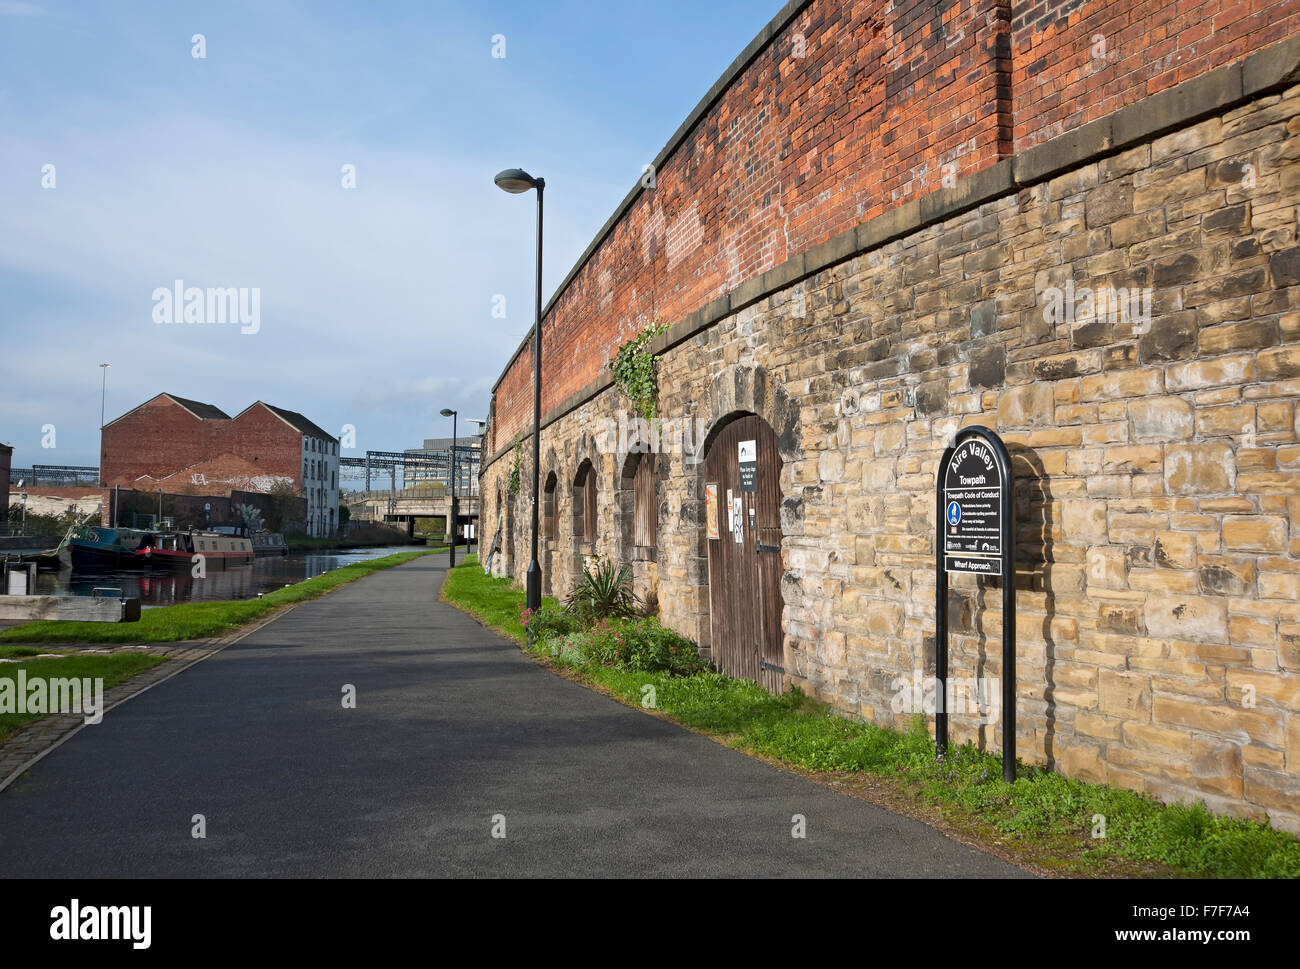 Towpath along the Aire and Calder Navigation Leeds West Yorkshire England UK United Kingdom GB Great Britain - Stock Image